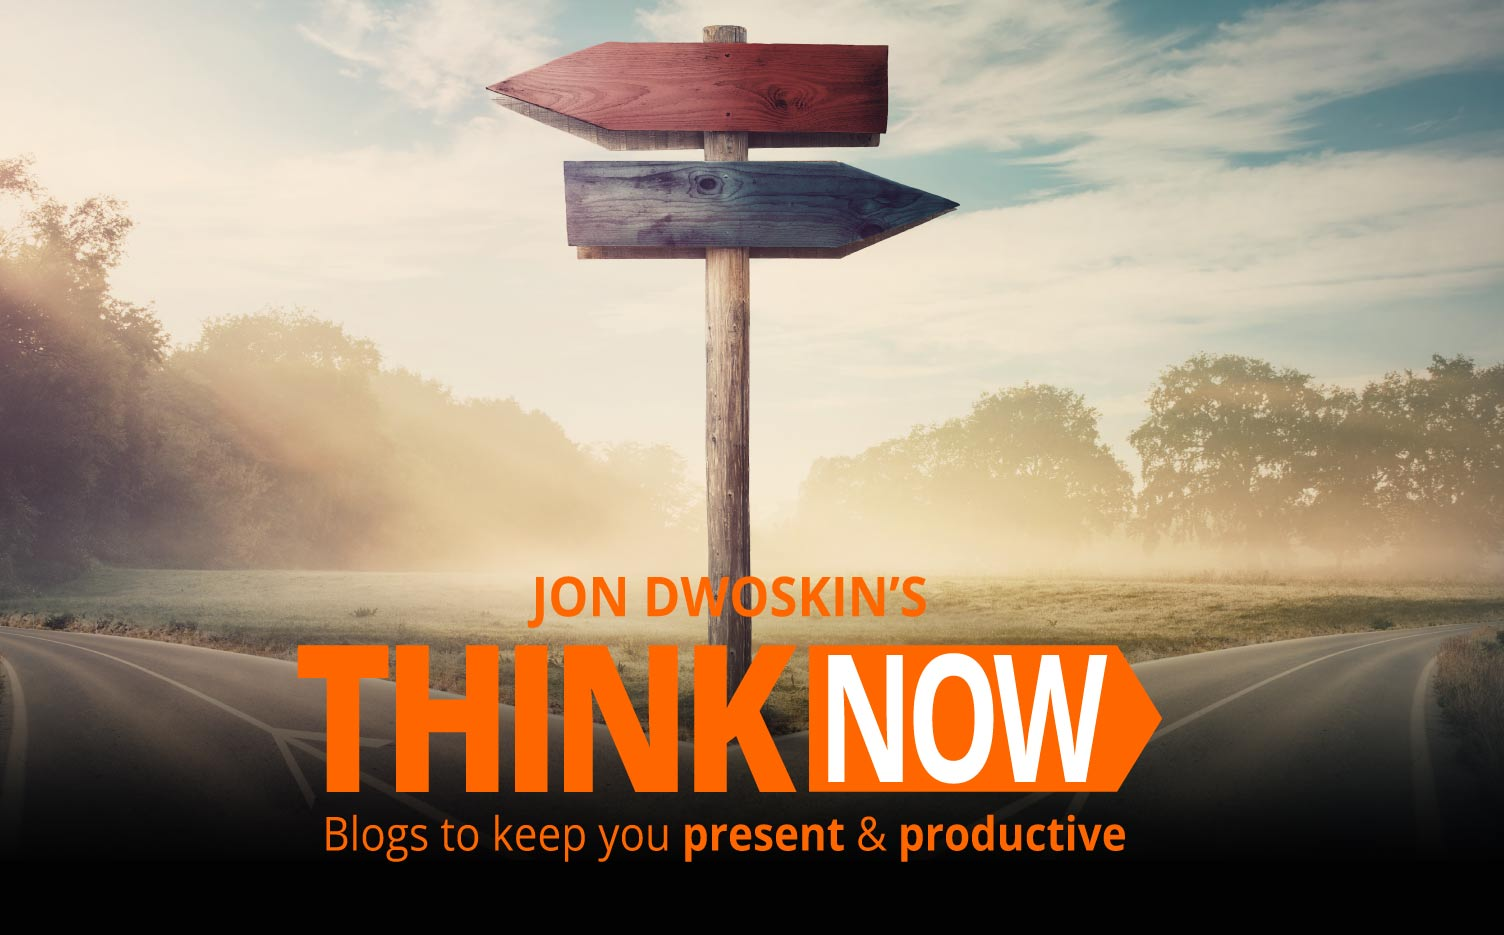 Jon Dwoskin's THINK NOW Blog: A Global Crisis Presents Watershed Moments